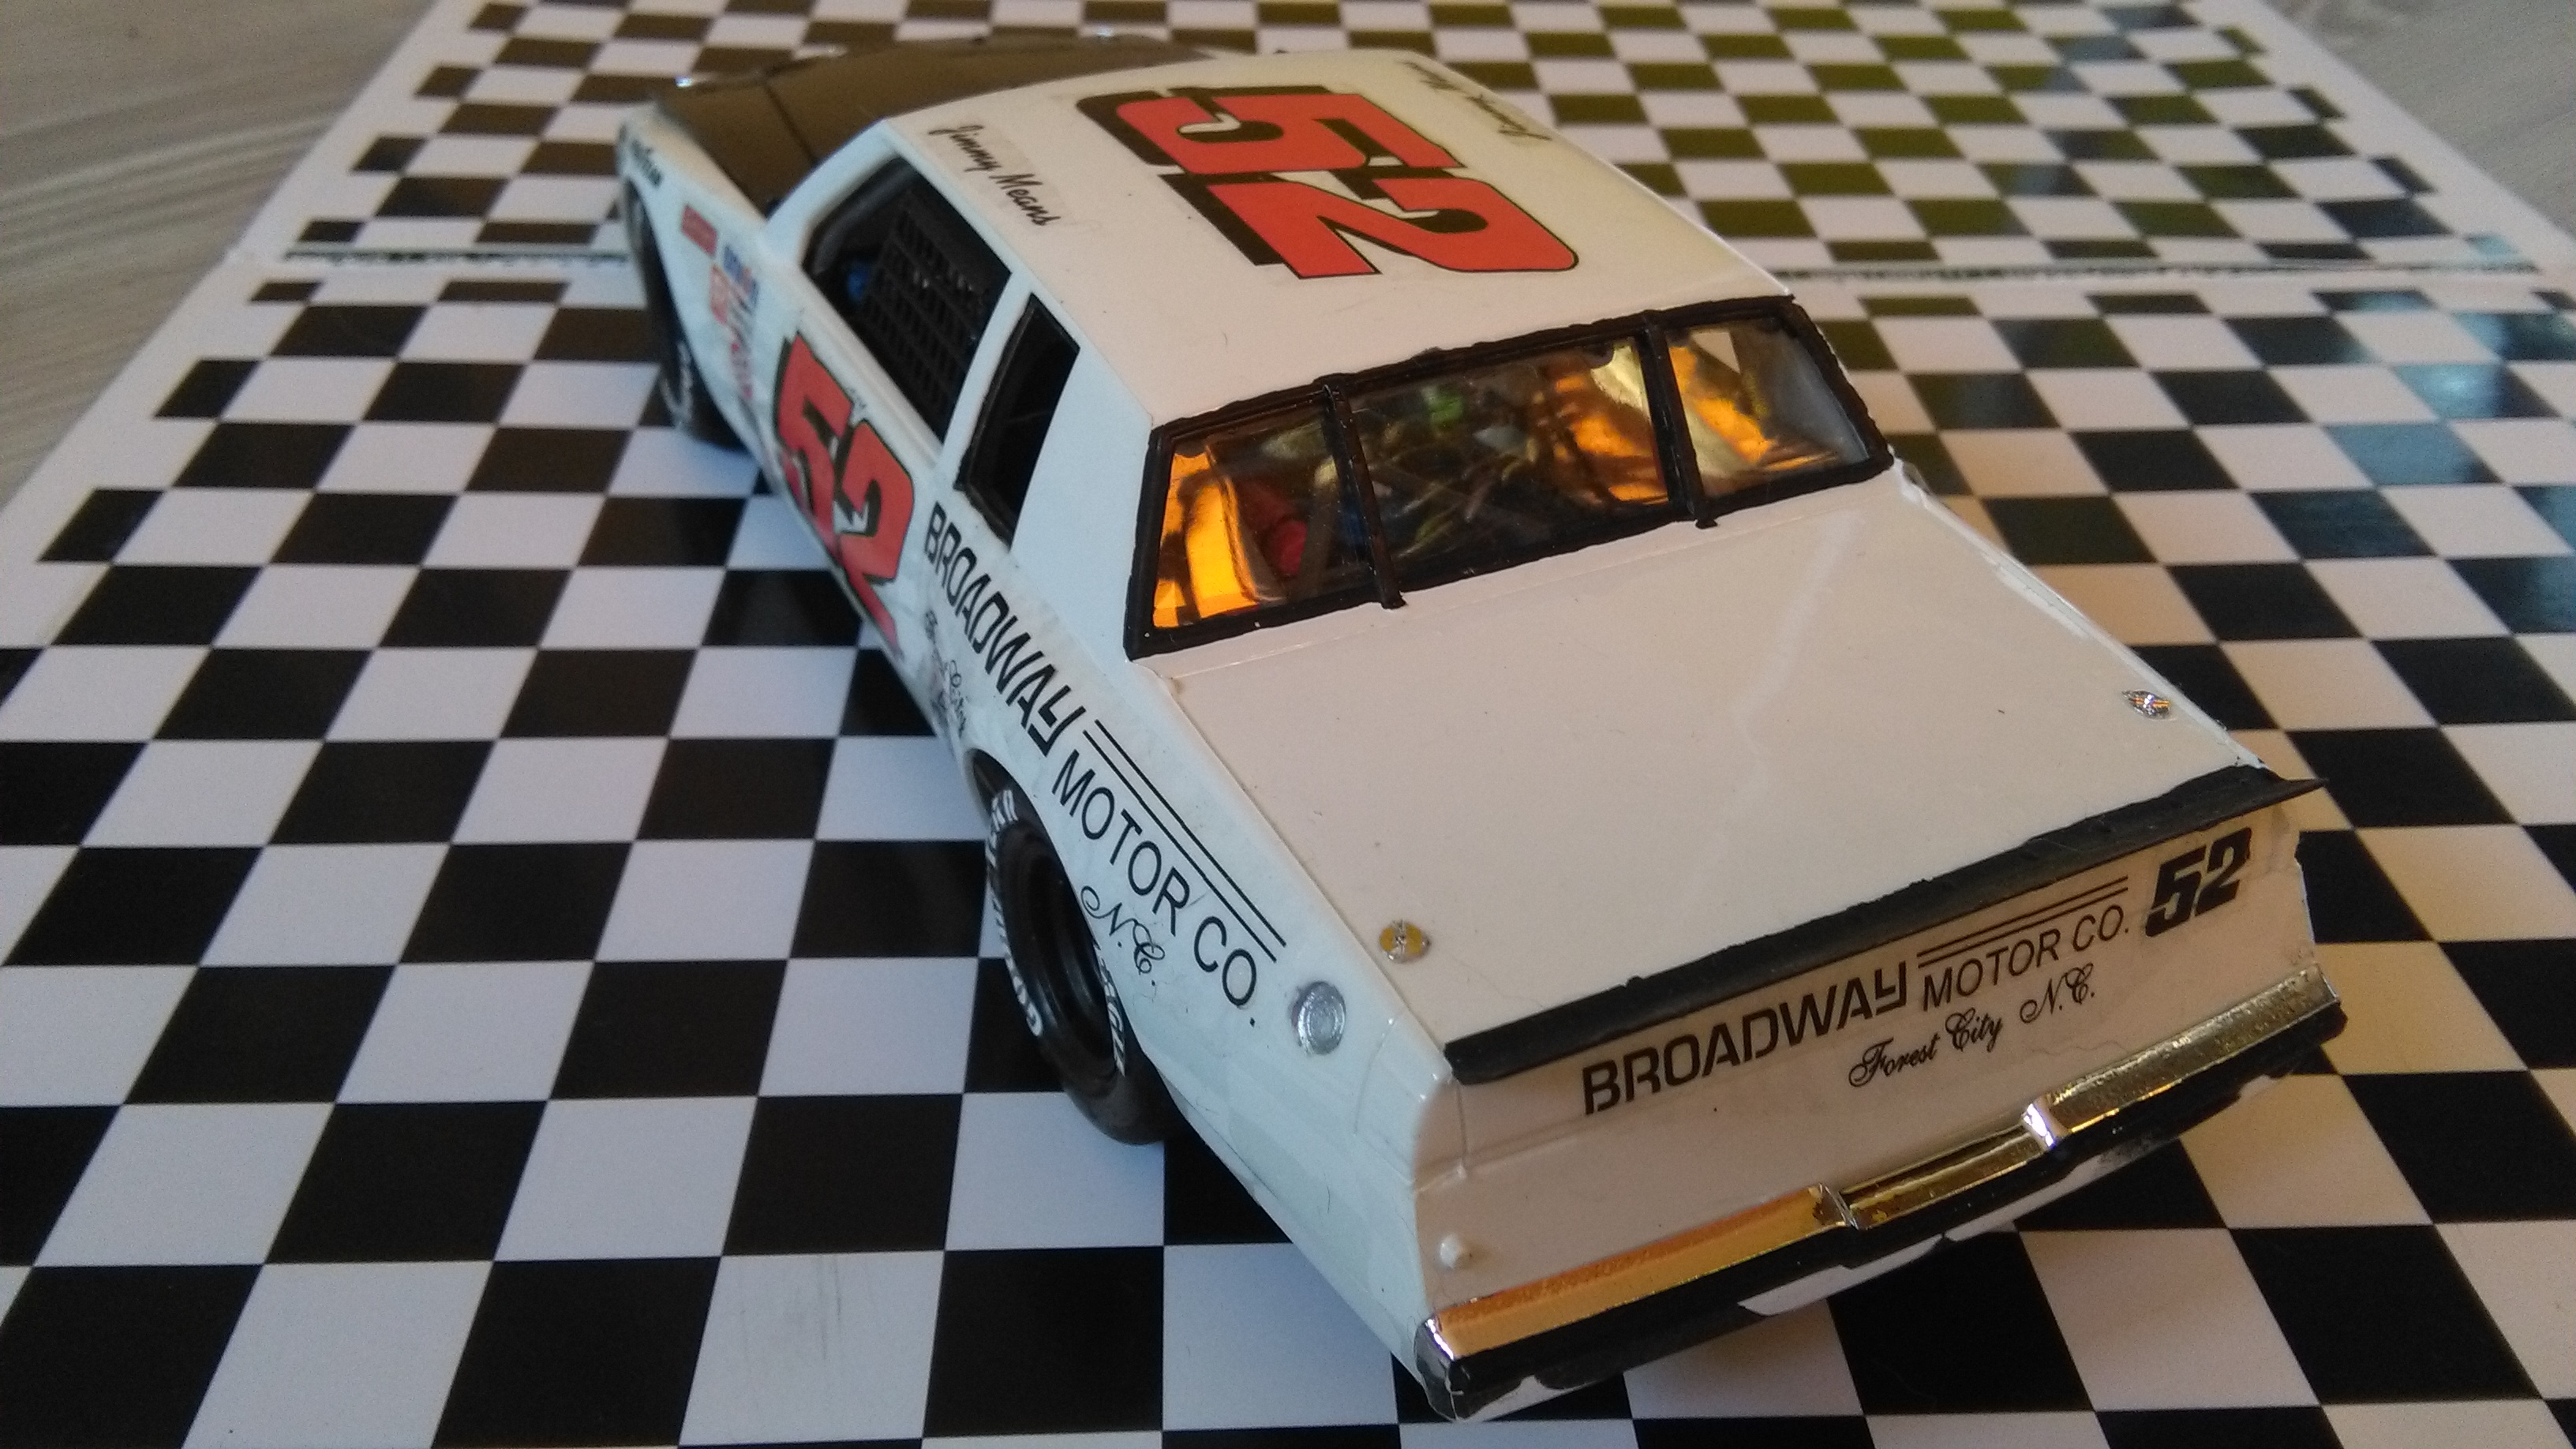 Buick Regal 1982 #52 Jimmy Means Broadway motor  455160IMG20170216083005